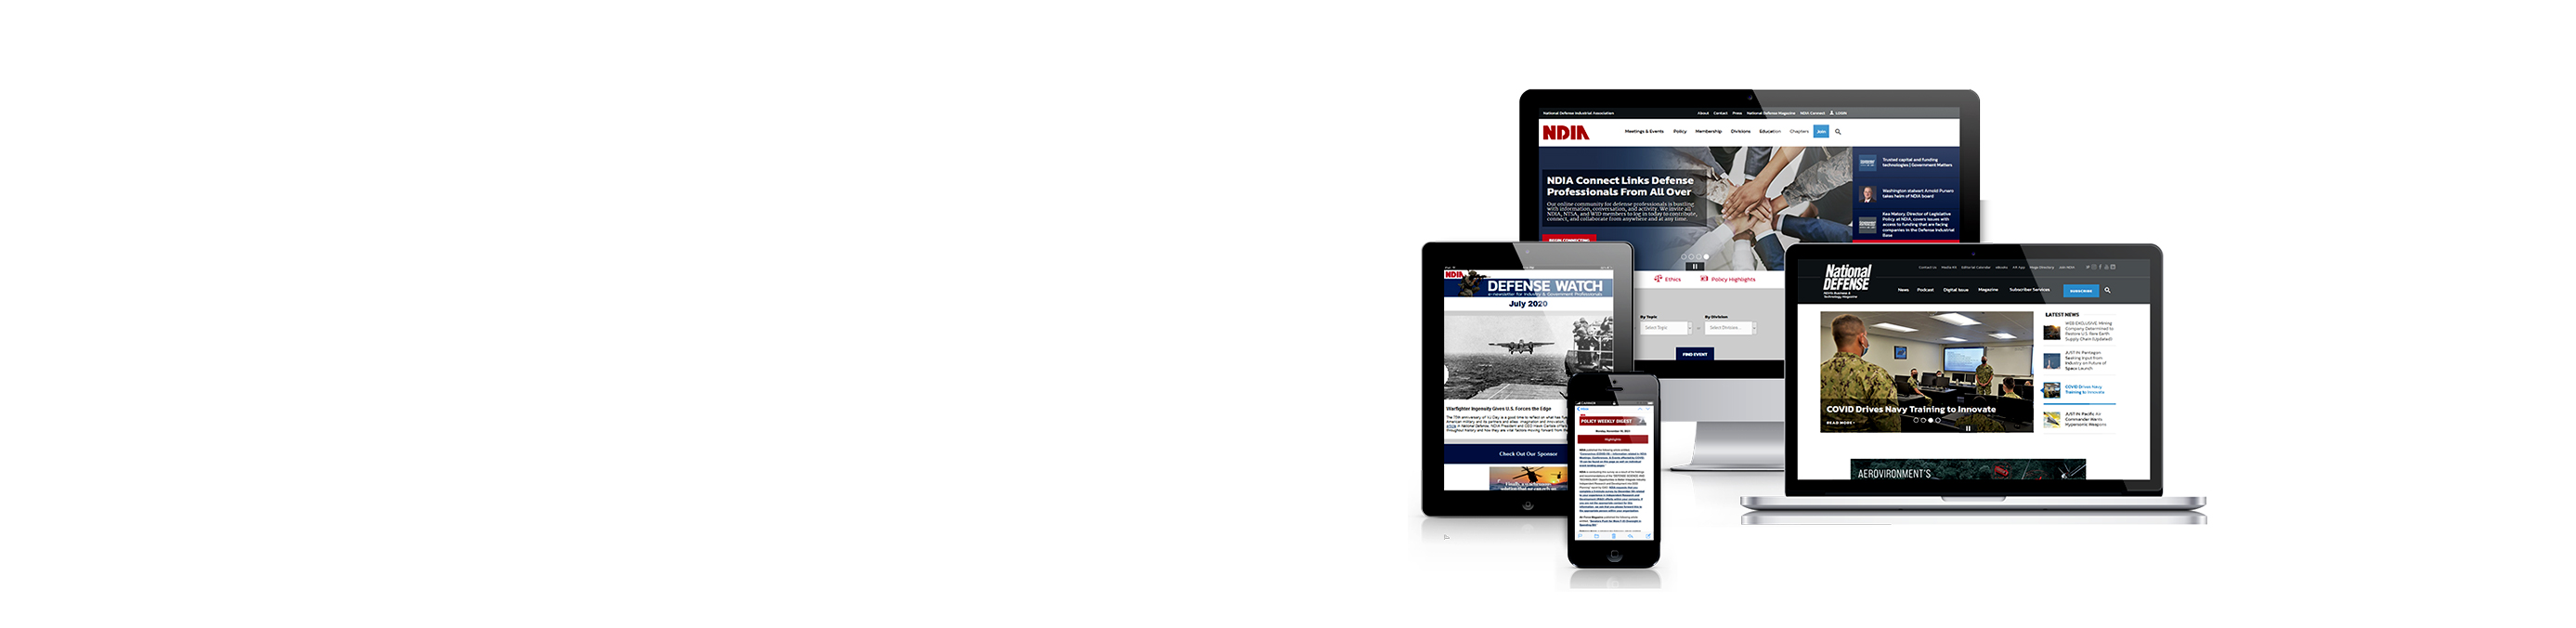 National Defense Magazine - Media Kit - Digital